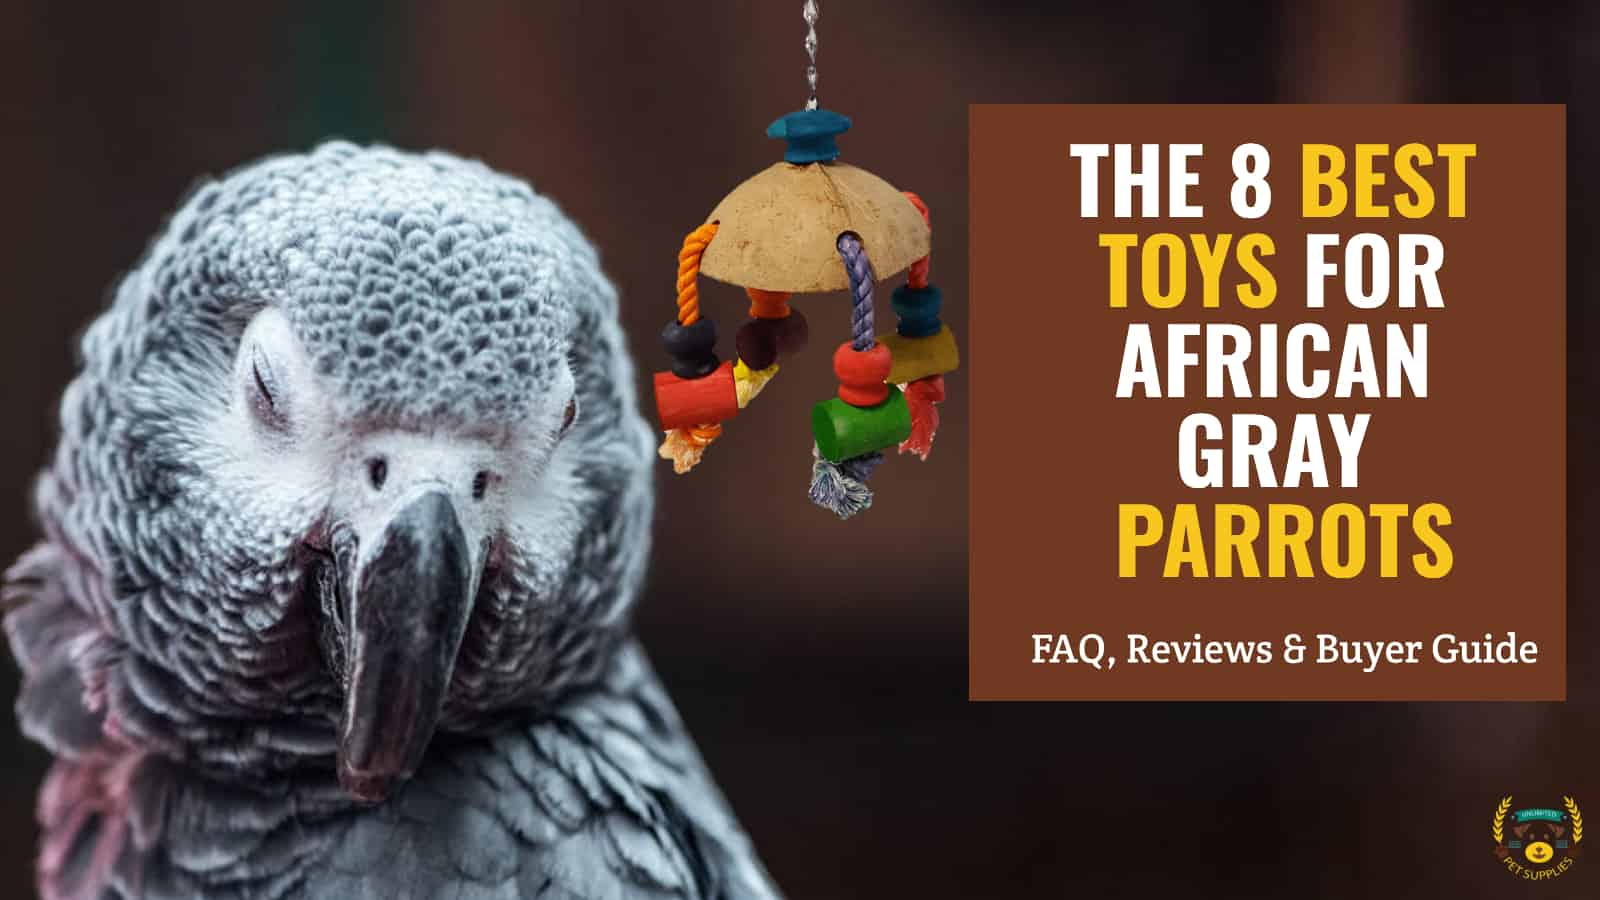 Best toys for African gray parrots